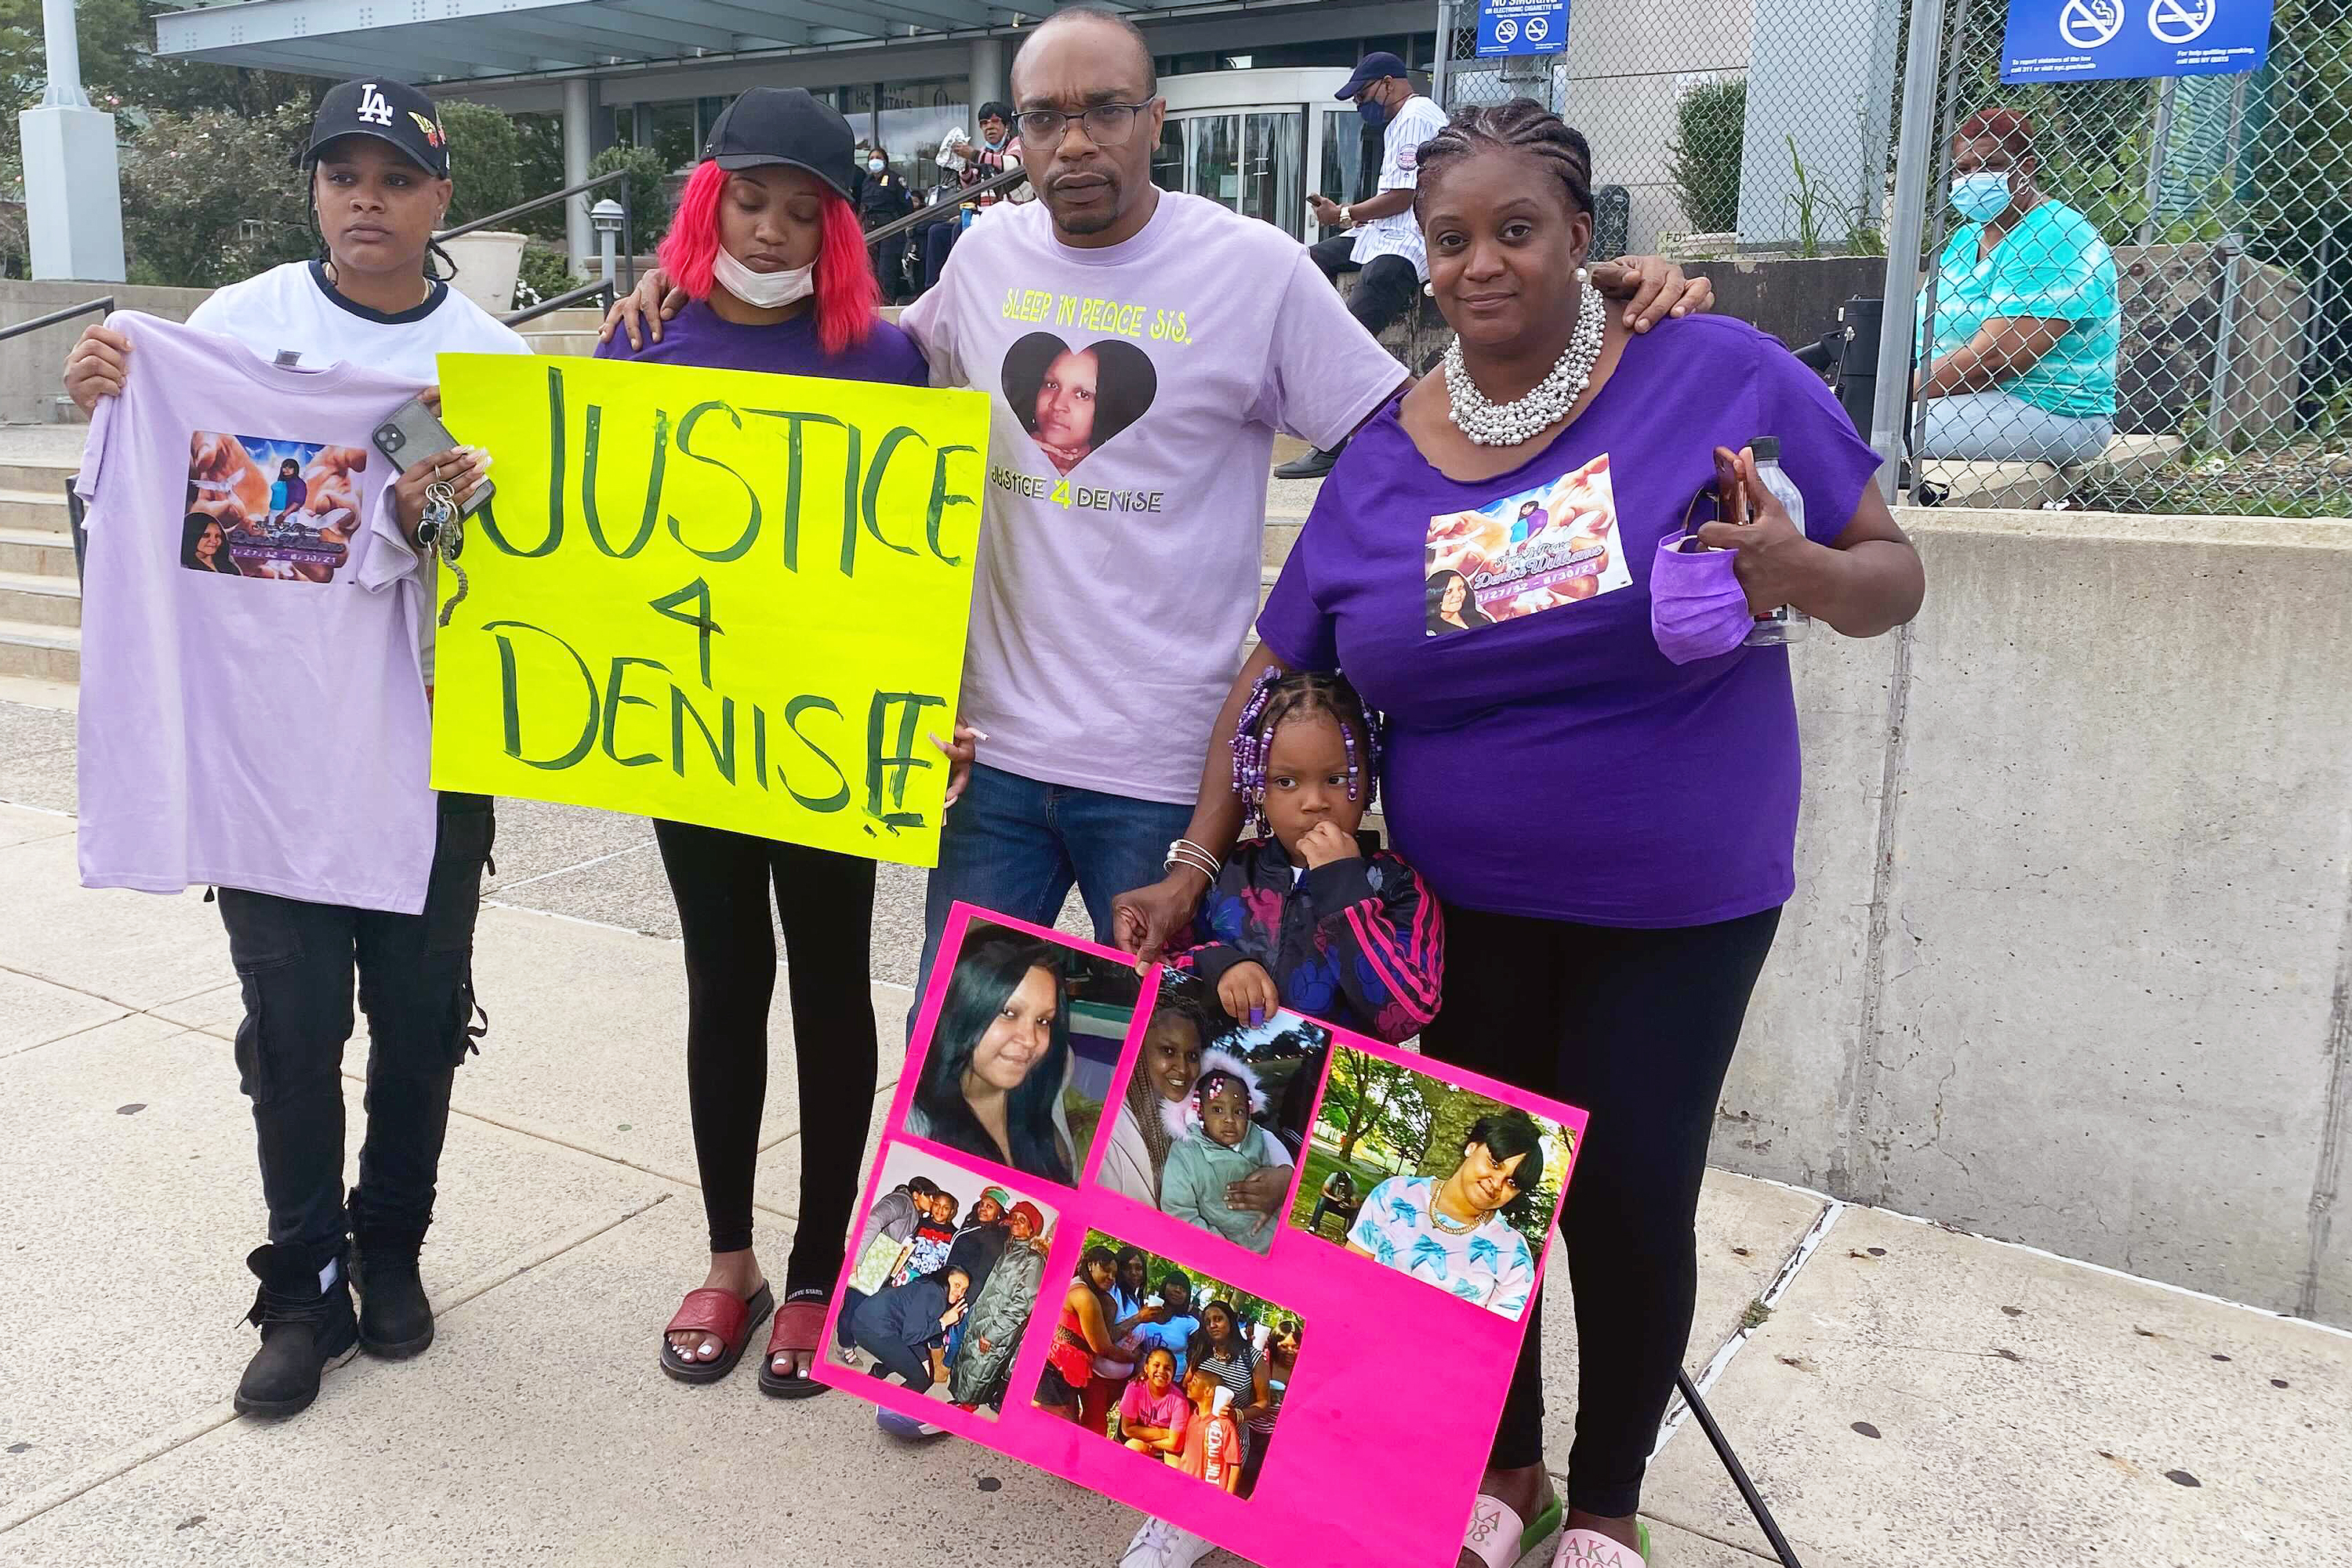 Denise Williams' family, including her 3-year-old daughter Aviana, protested her death at Queens Hospital while suffering from postpartum depression, Sept. 21, 2021.